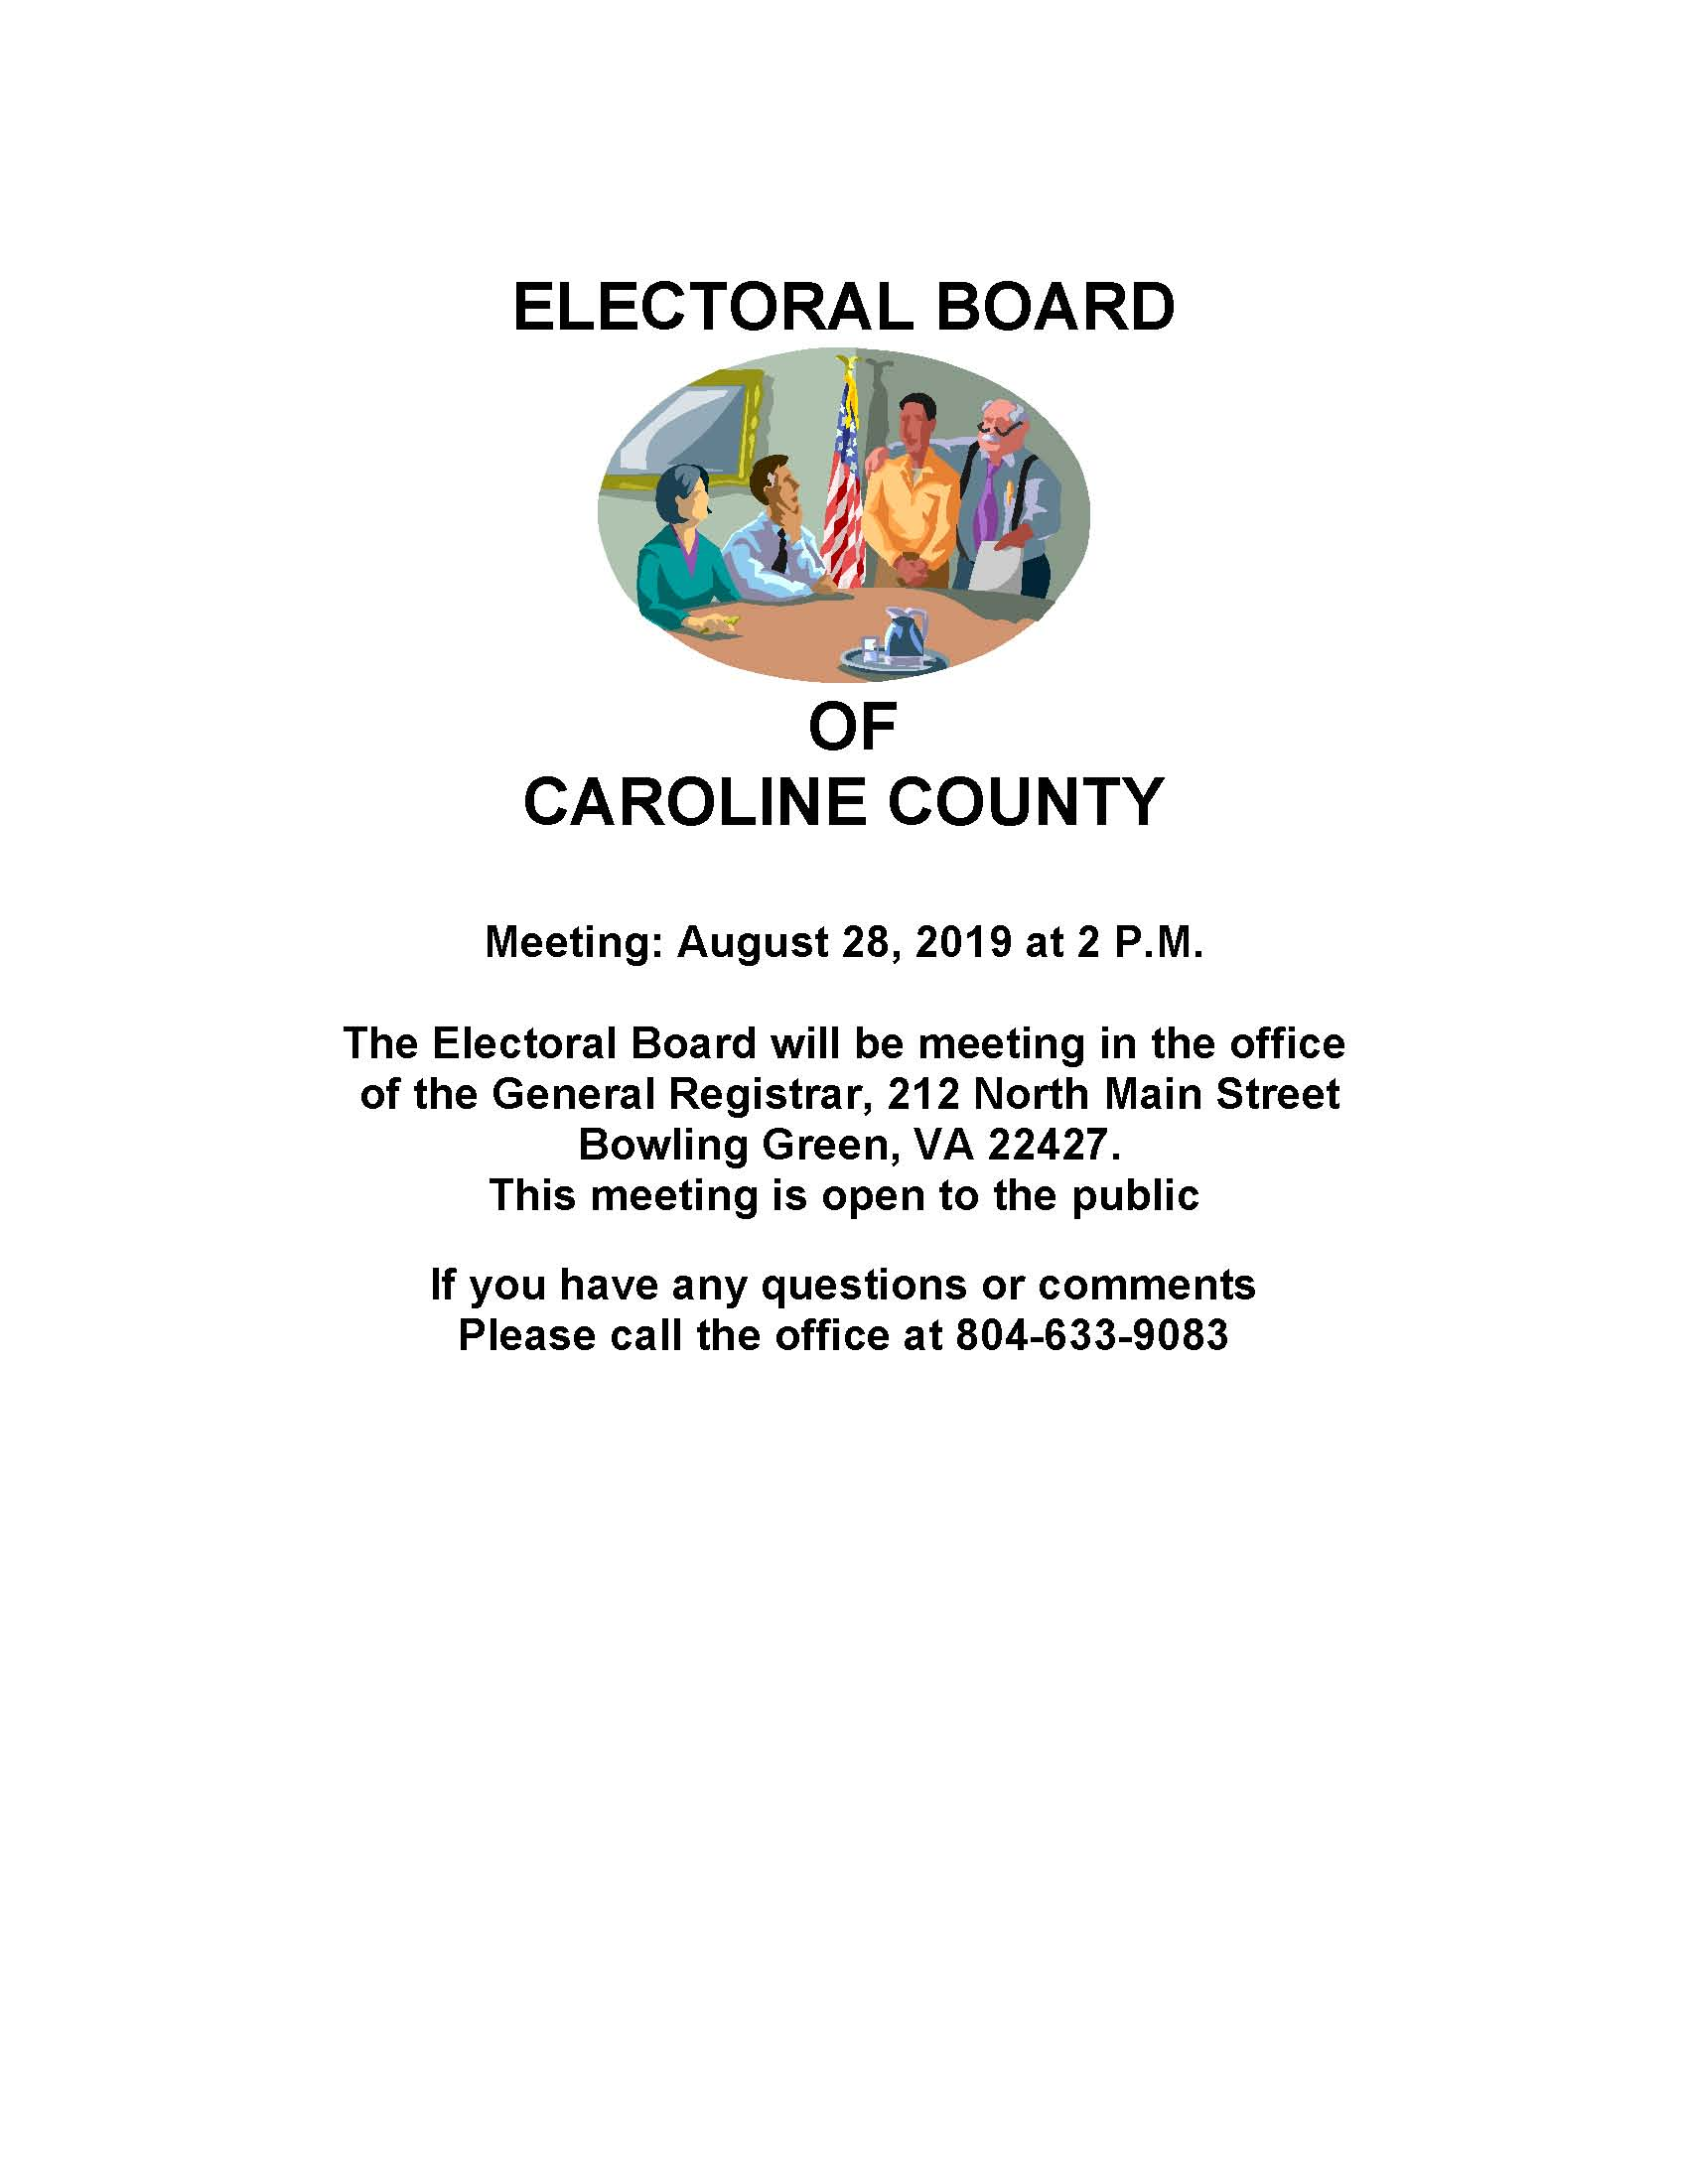 August 28, 2019 Electoral Board Meeting Notice